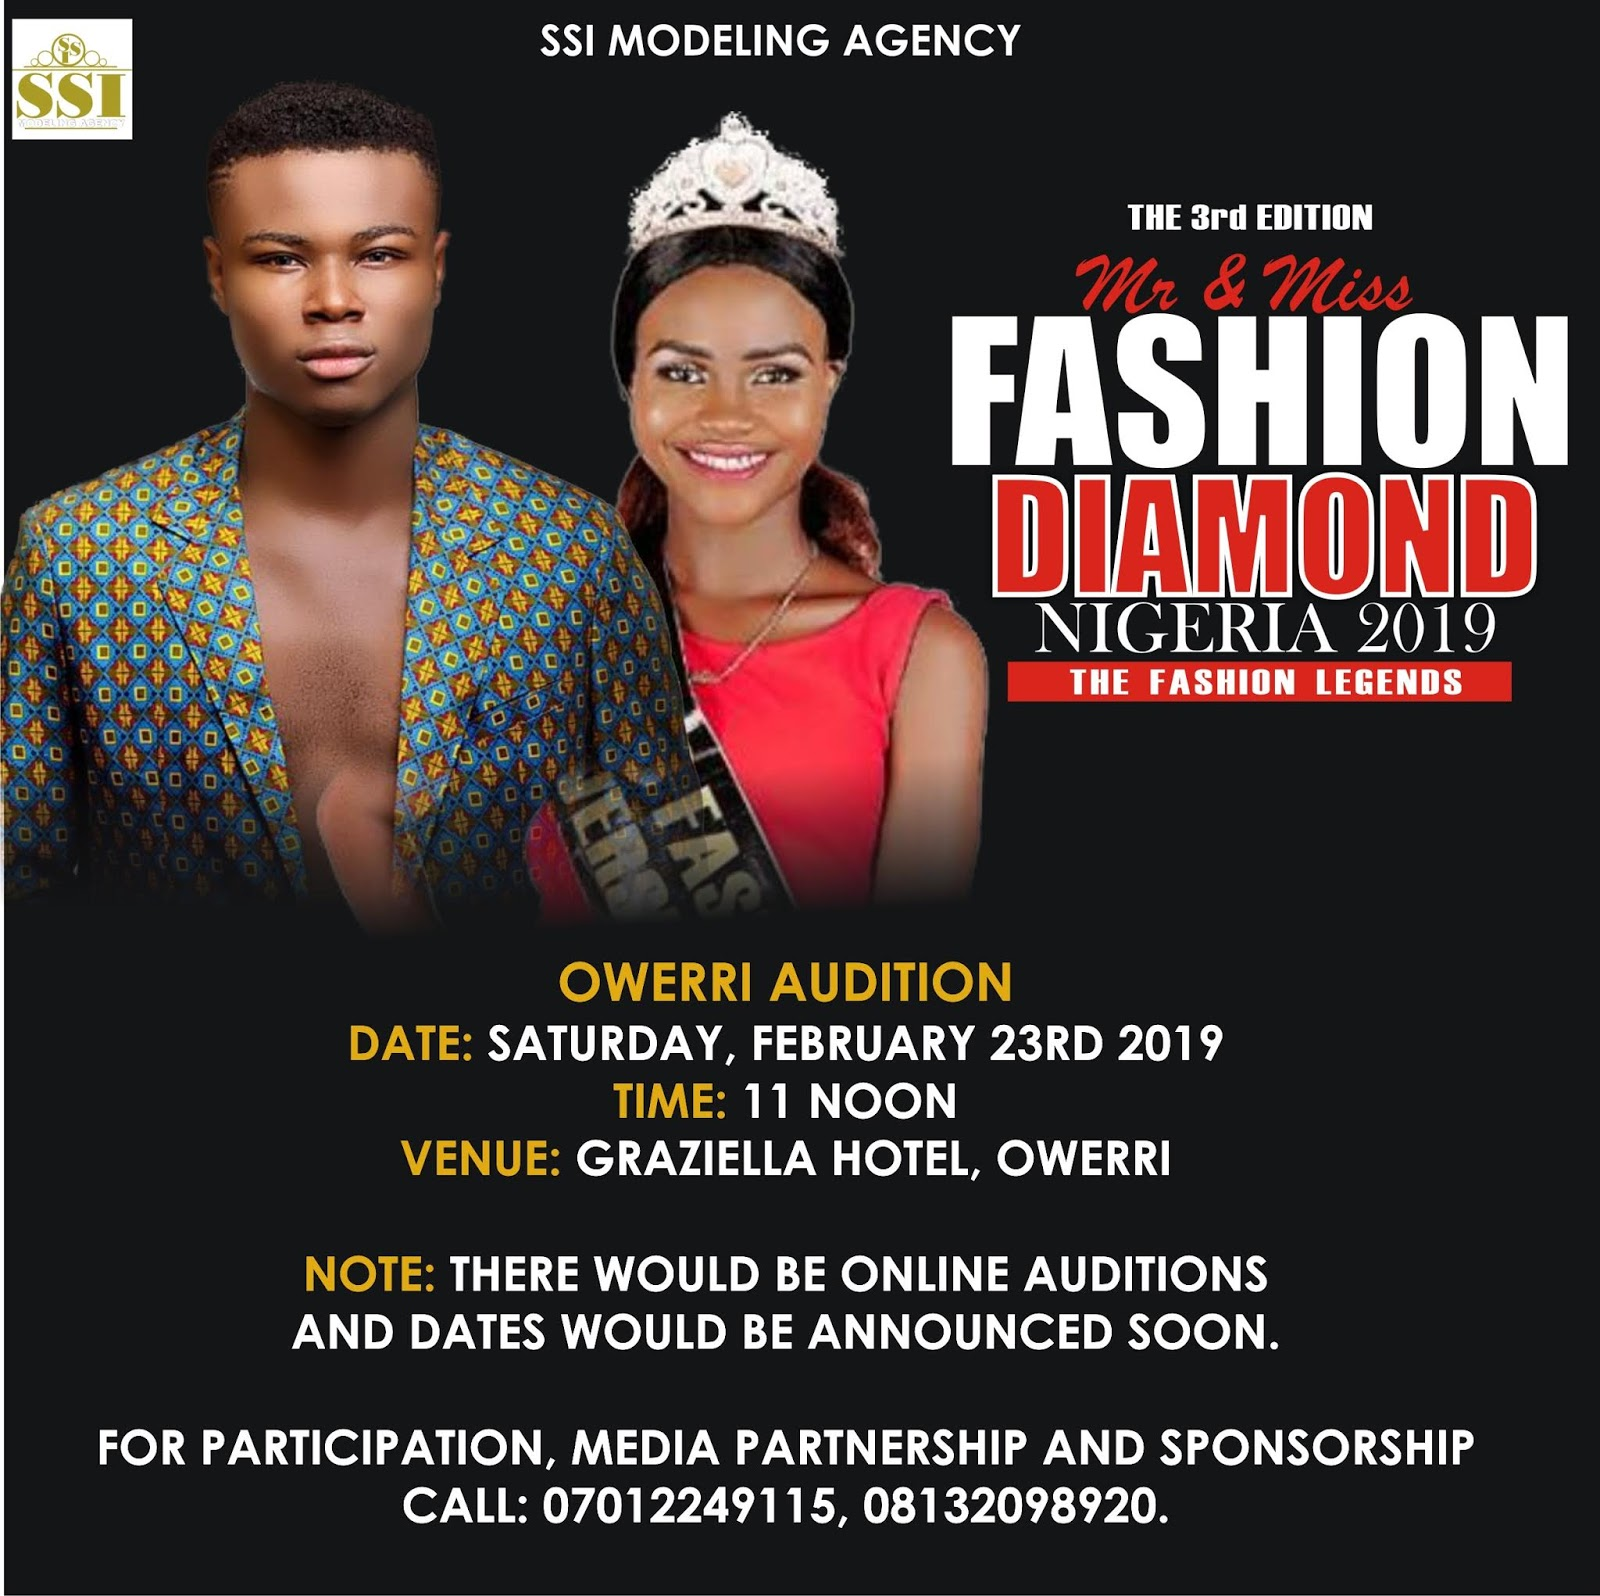 WELCOME TO SSI MODELING AGENCY: MFDN 2019 AUDITION DATE RELEASED